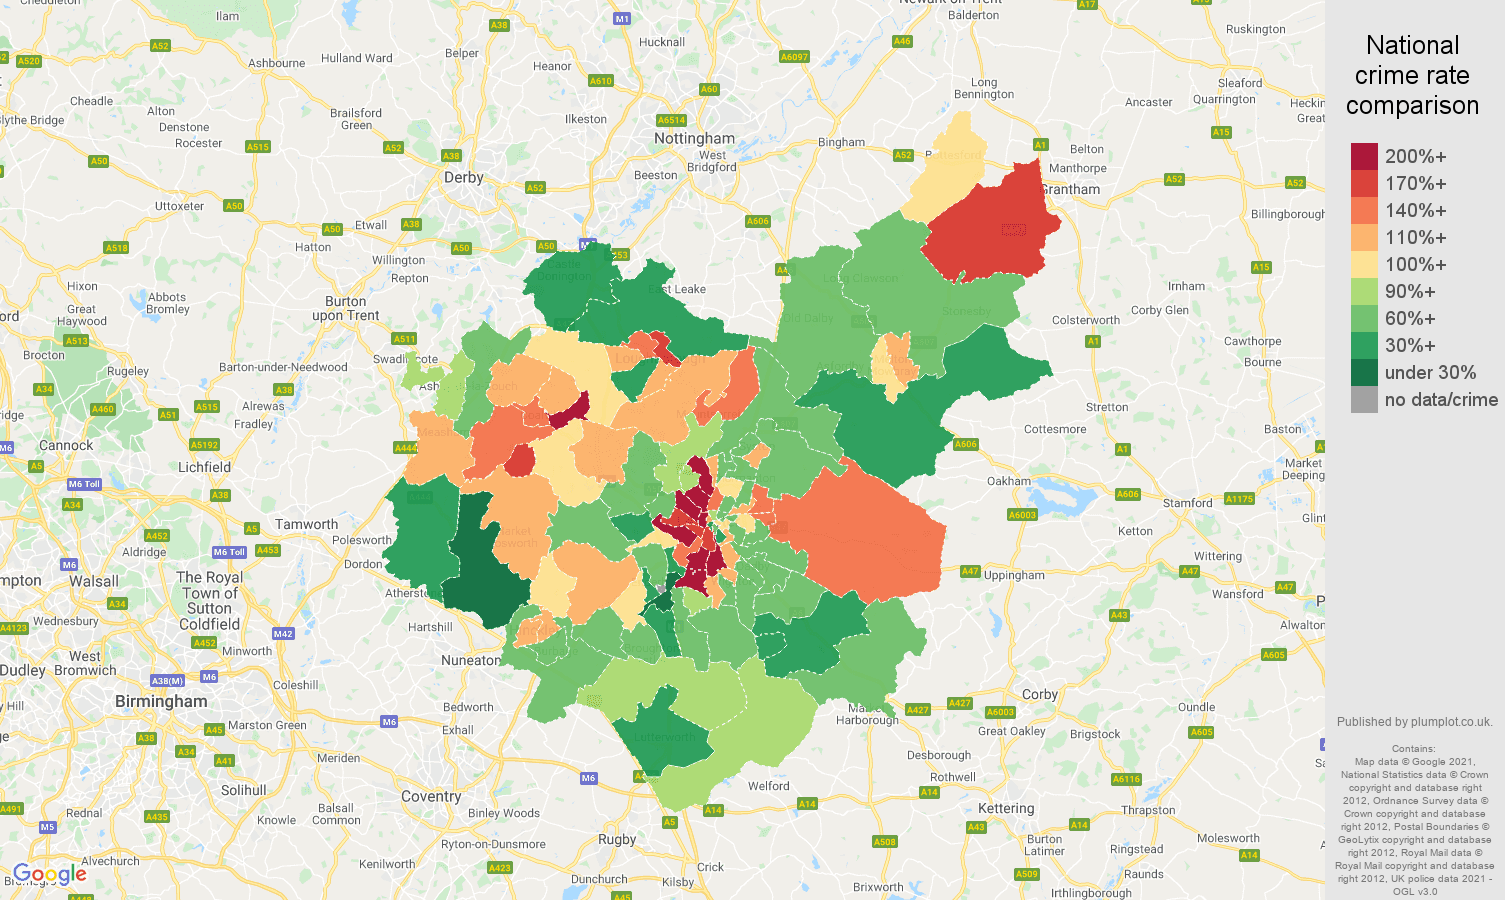 Leicestershire criminal damage and arson crime rate comparison map